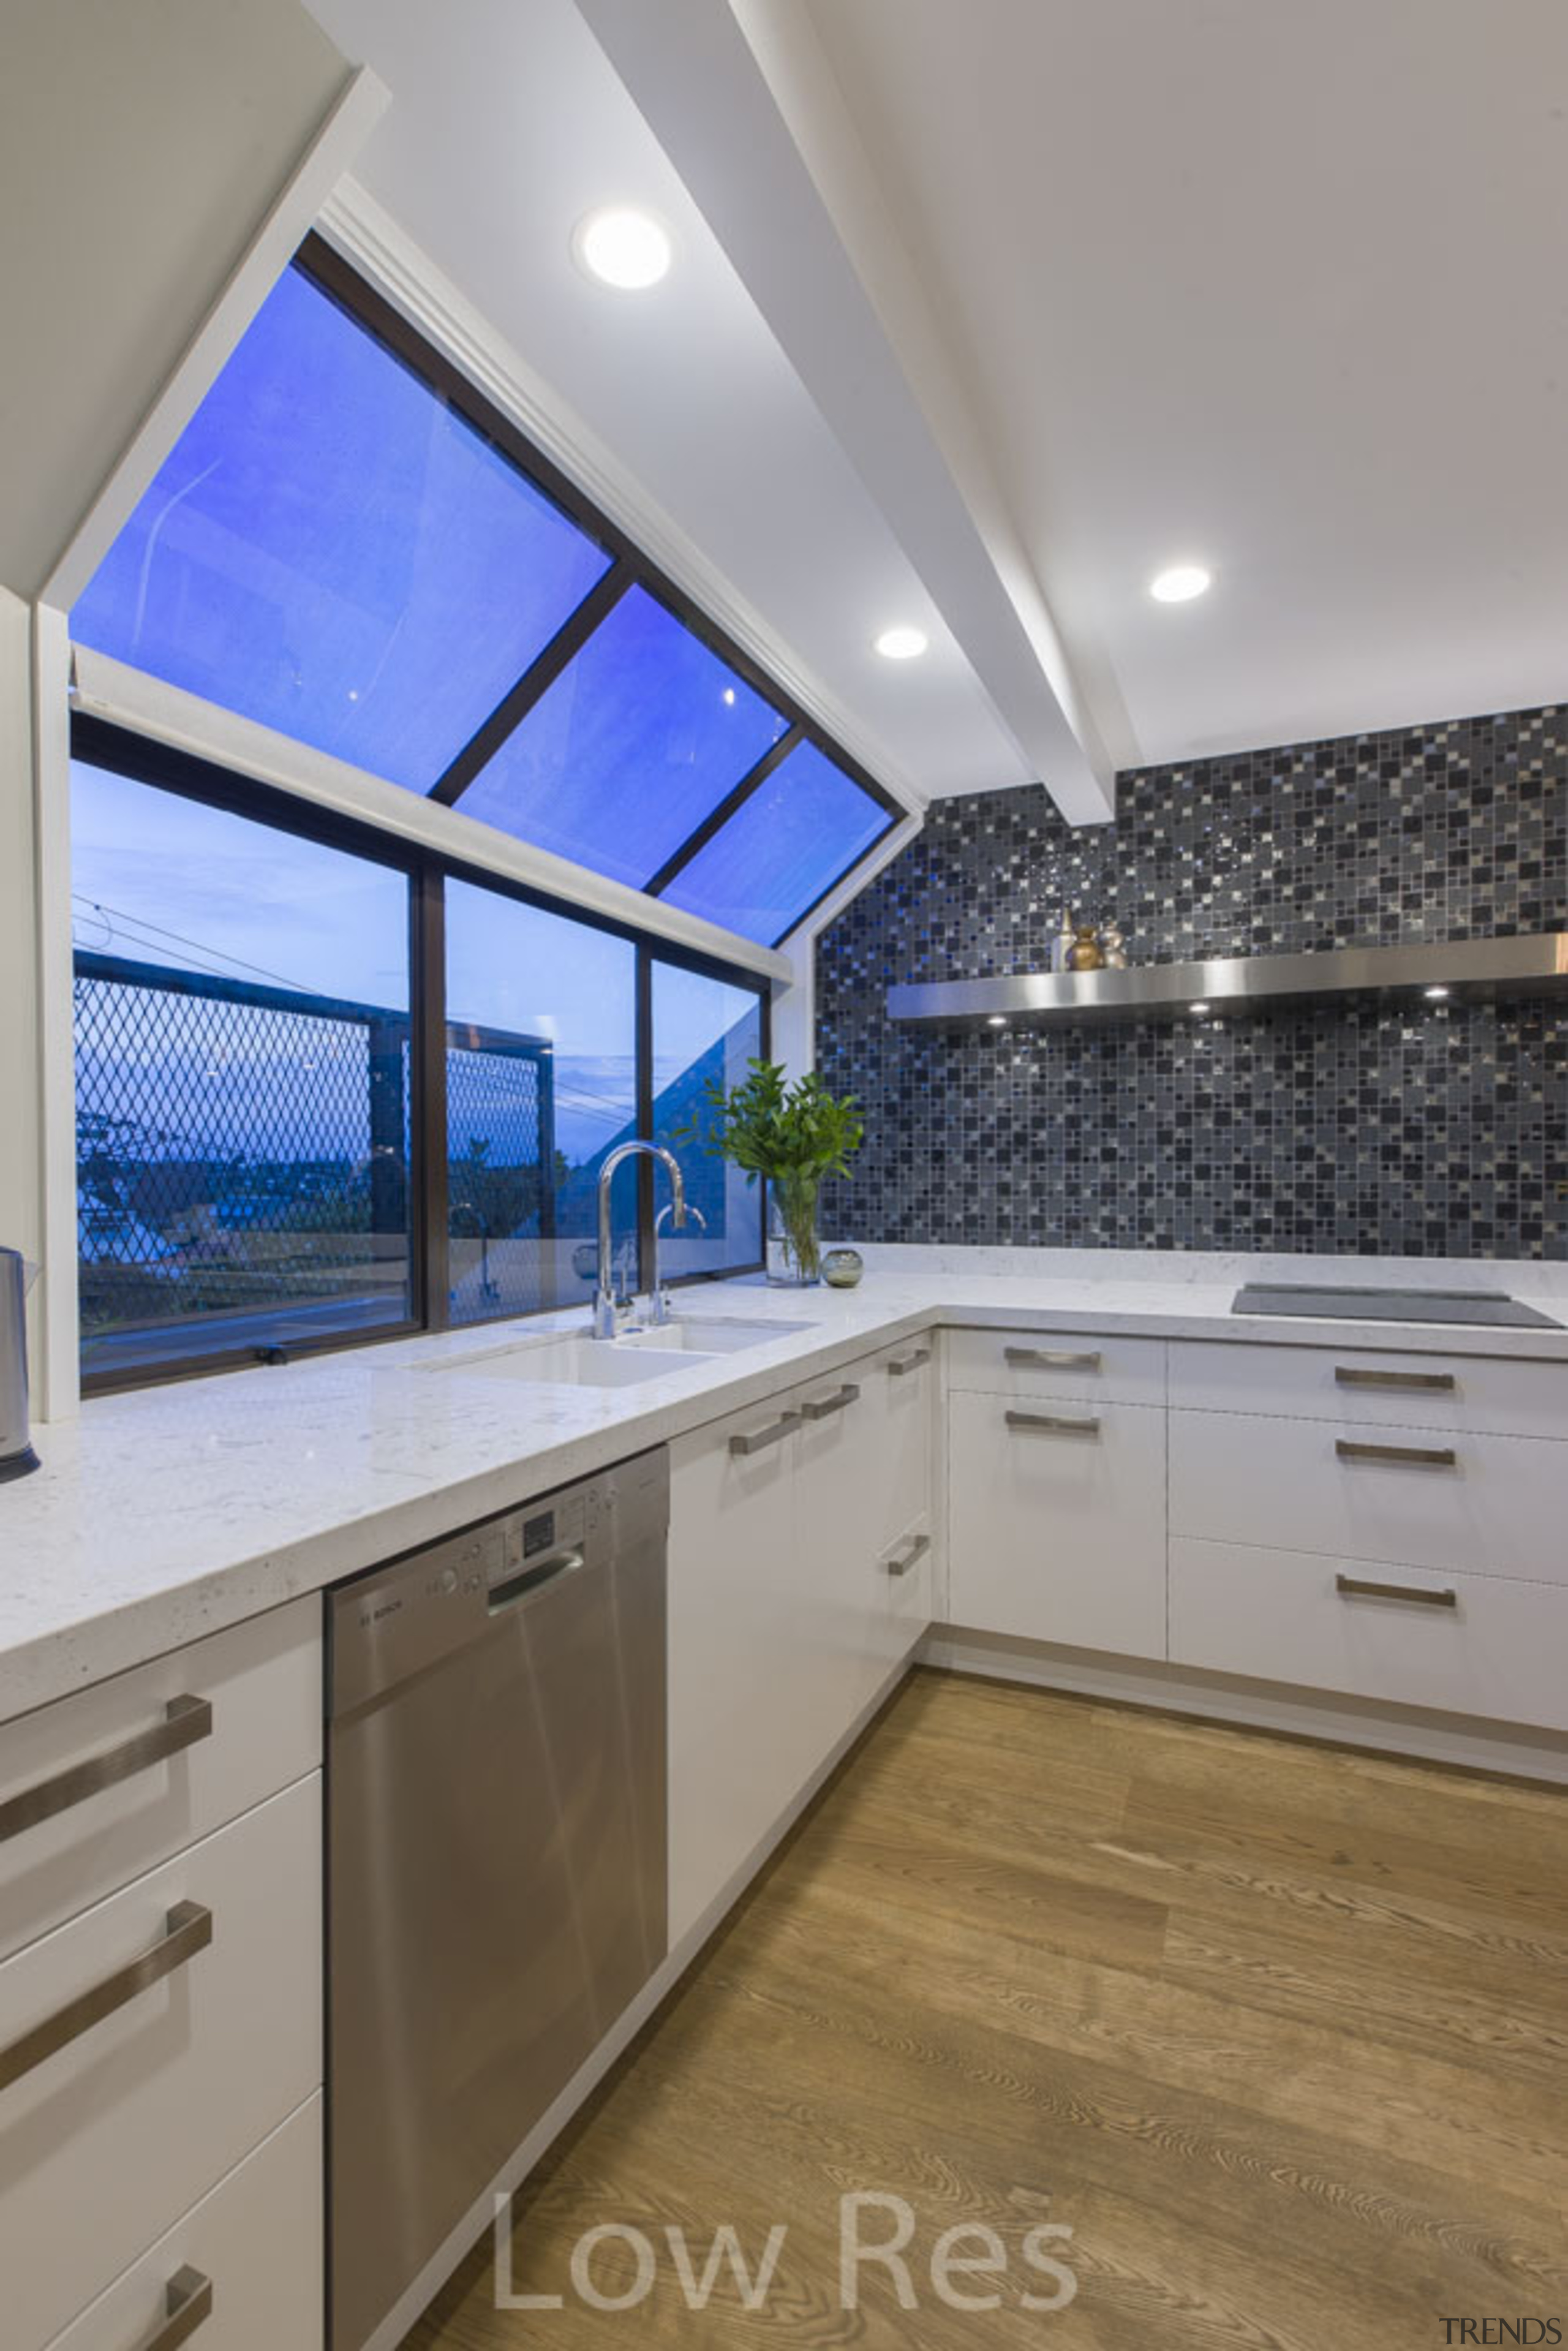 St Heliers III - ceiling | countertop | ceiling, countertop, daylighting, estate, interior design, kitchen, property, real estate, room, window, gray